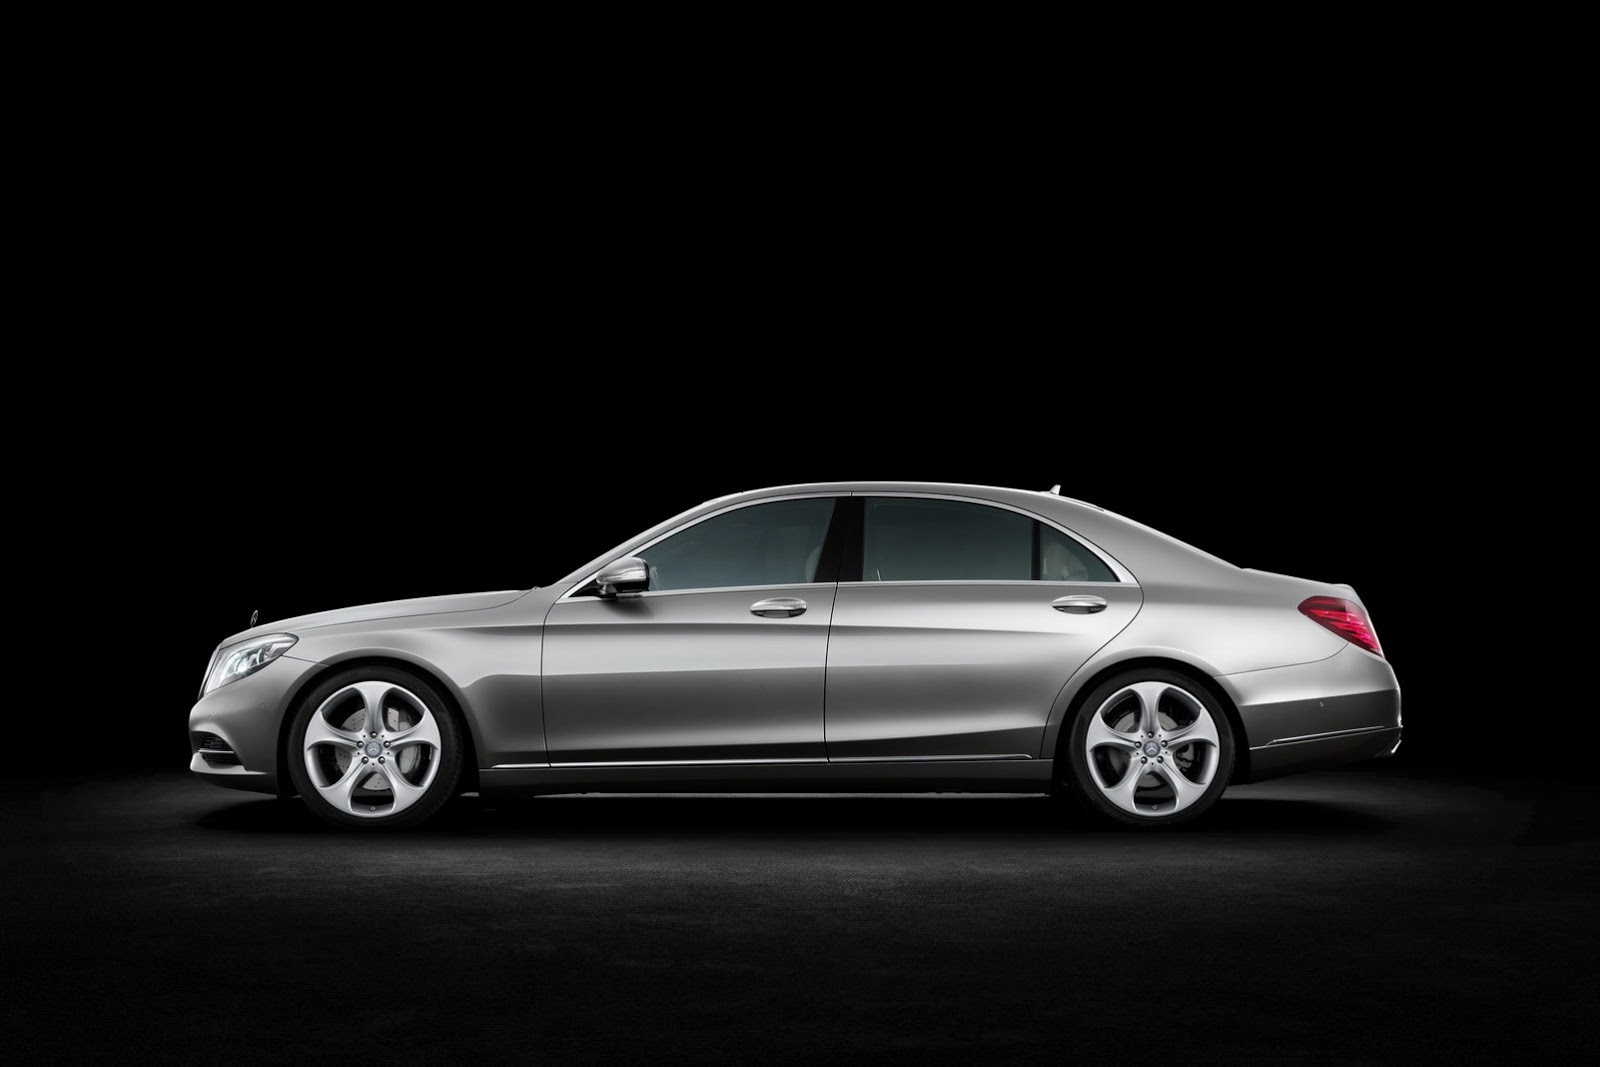 2014 Mercedes Benz S-Class - SMADE MEDIA (63)